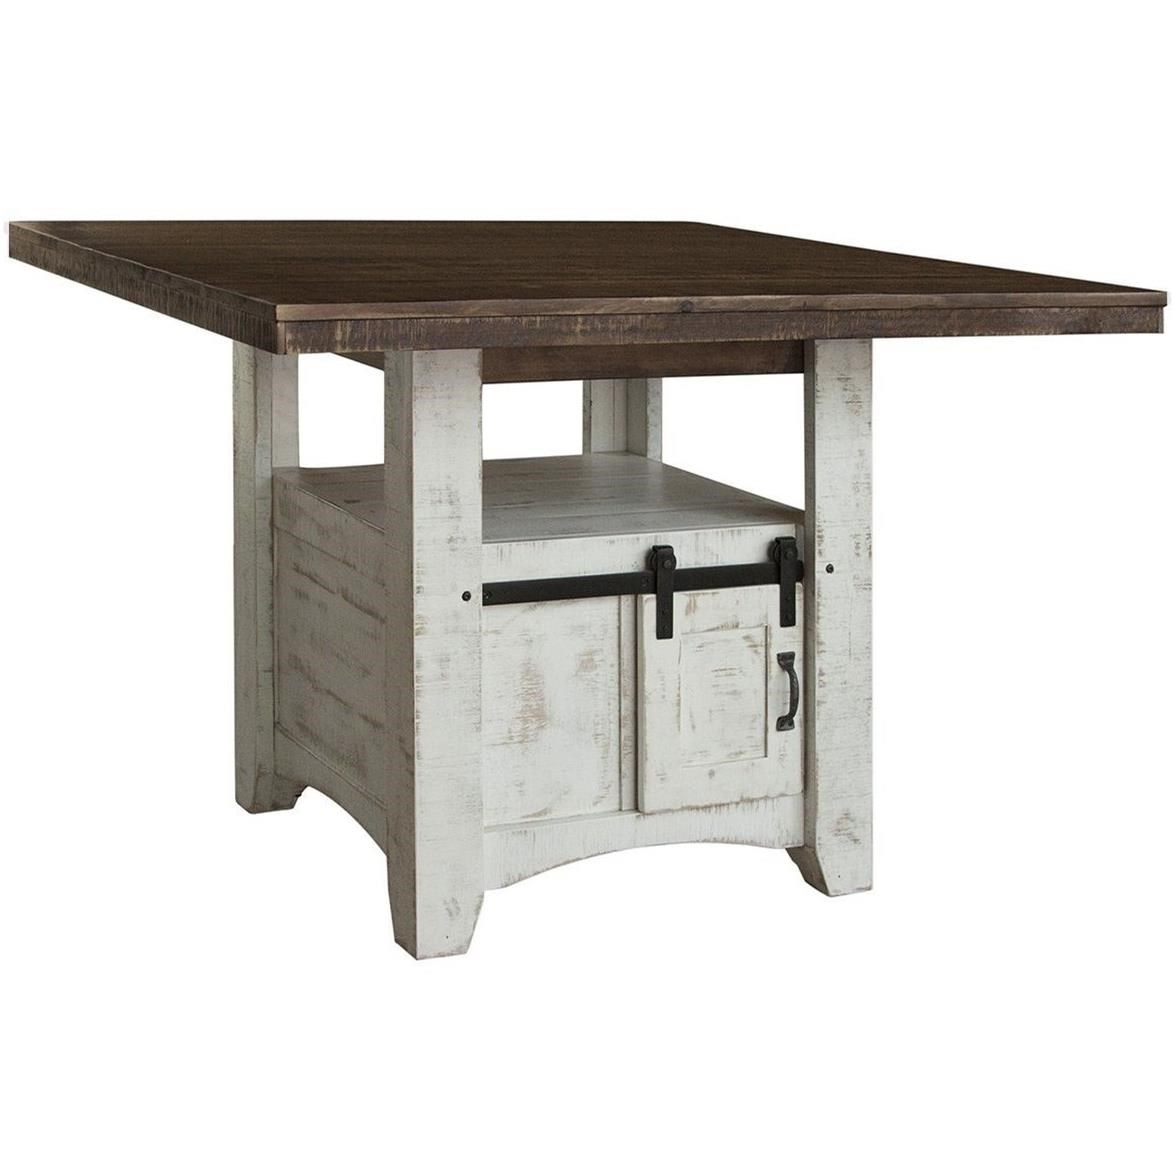 Pueblo Counter Height Table by International Furniture Direct at Houston's Yuma Furniture